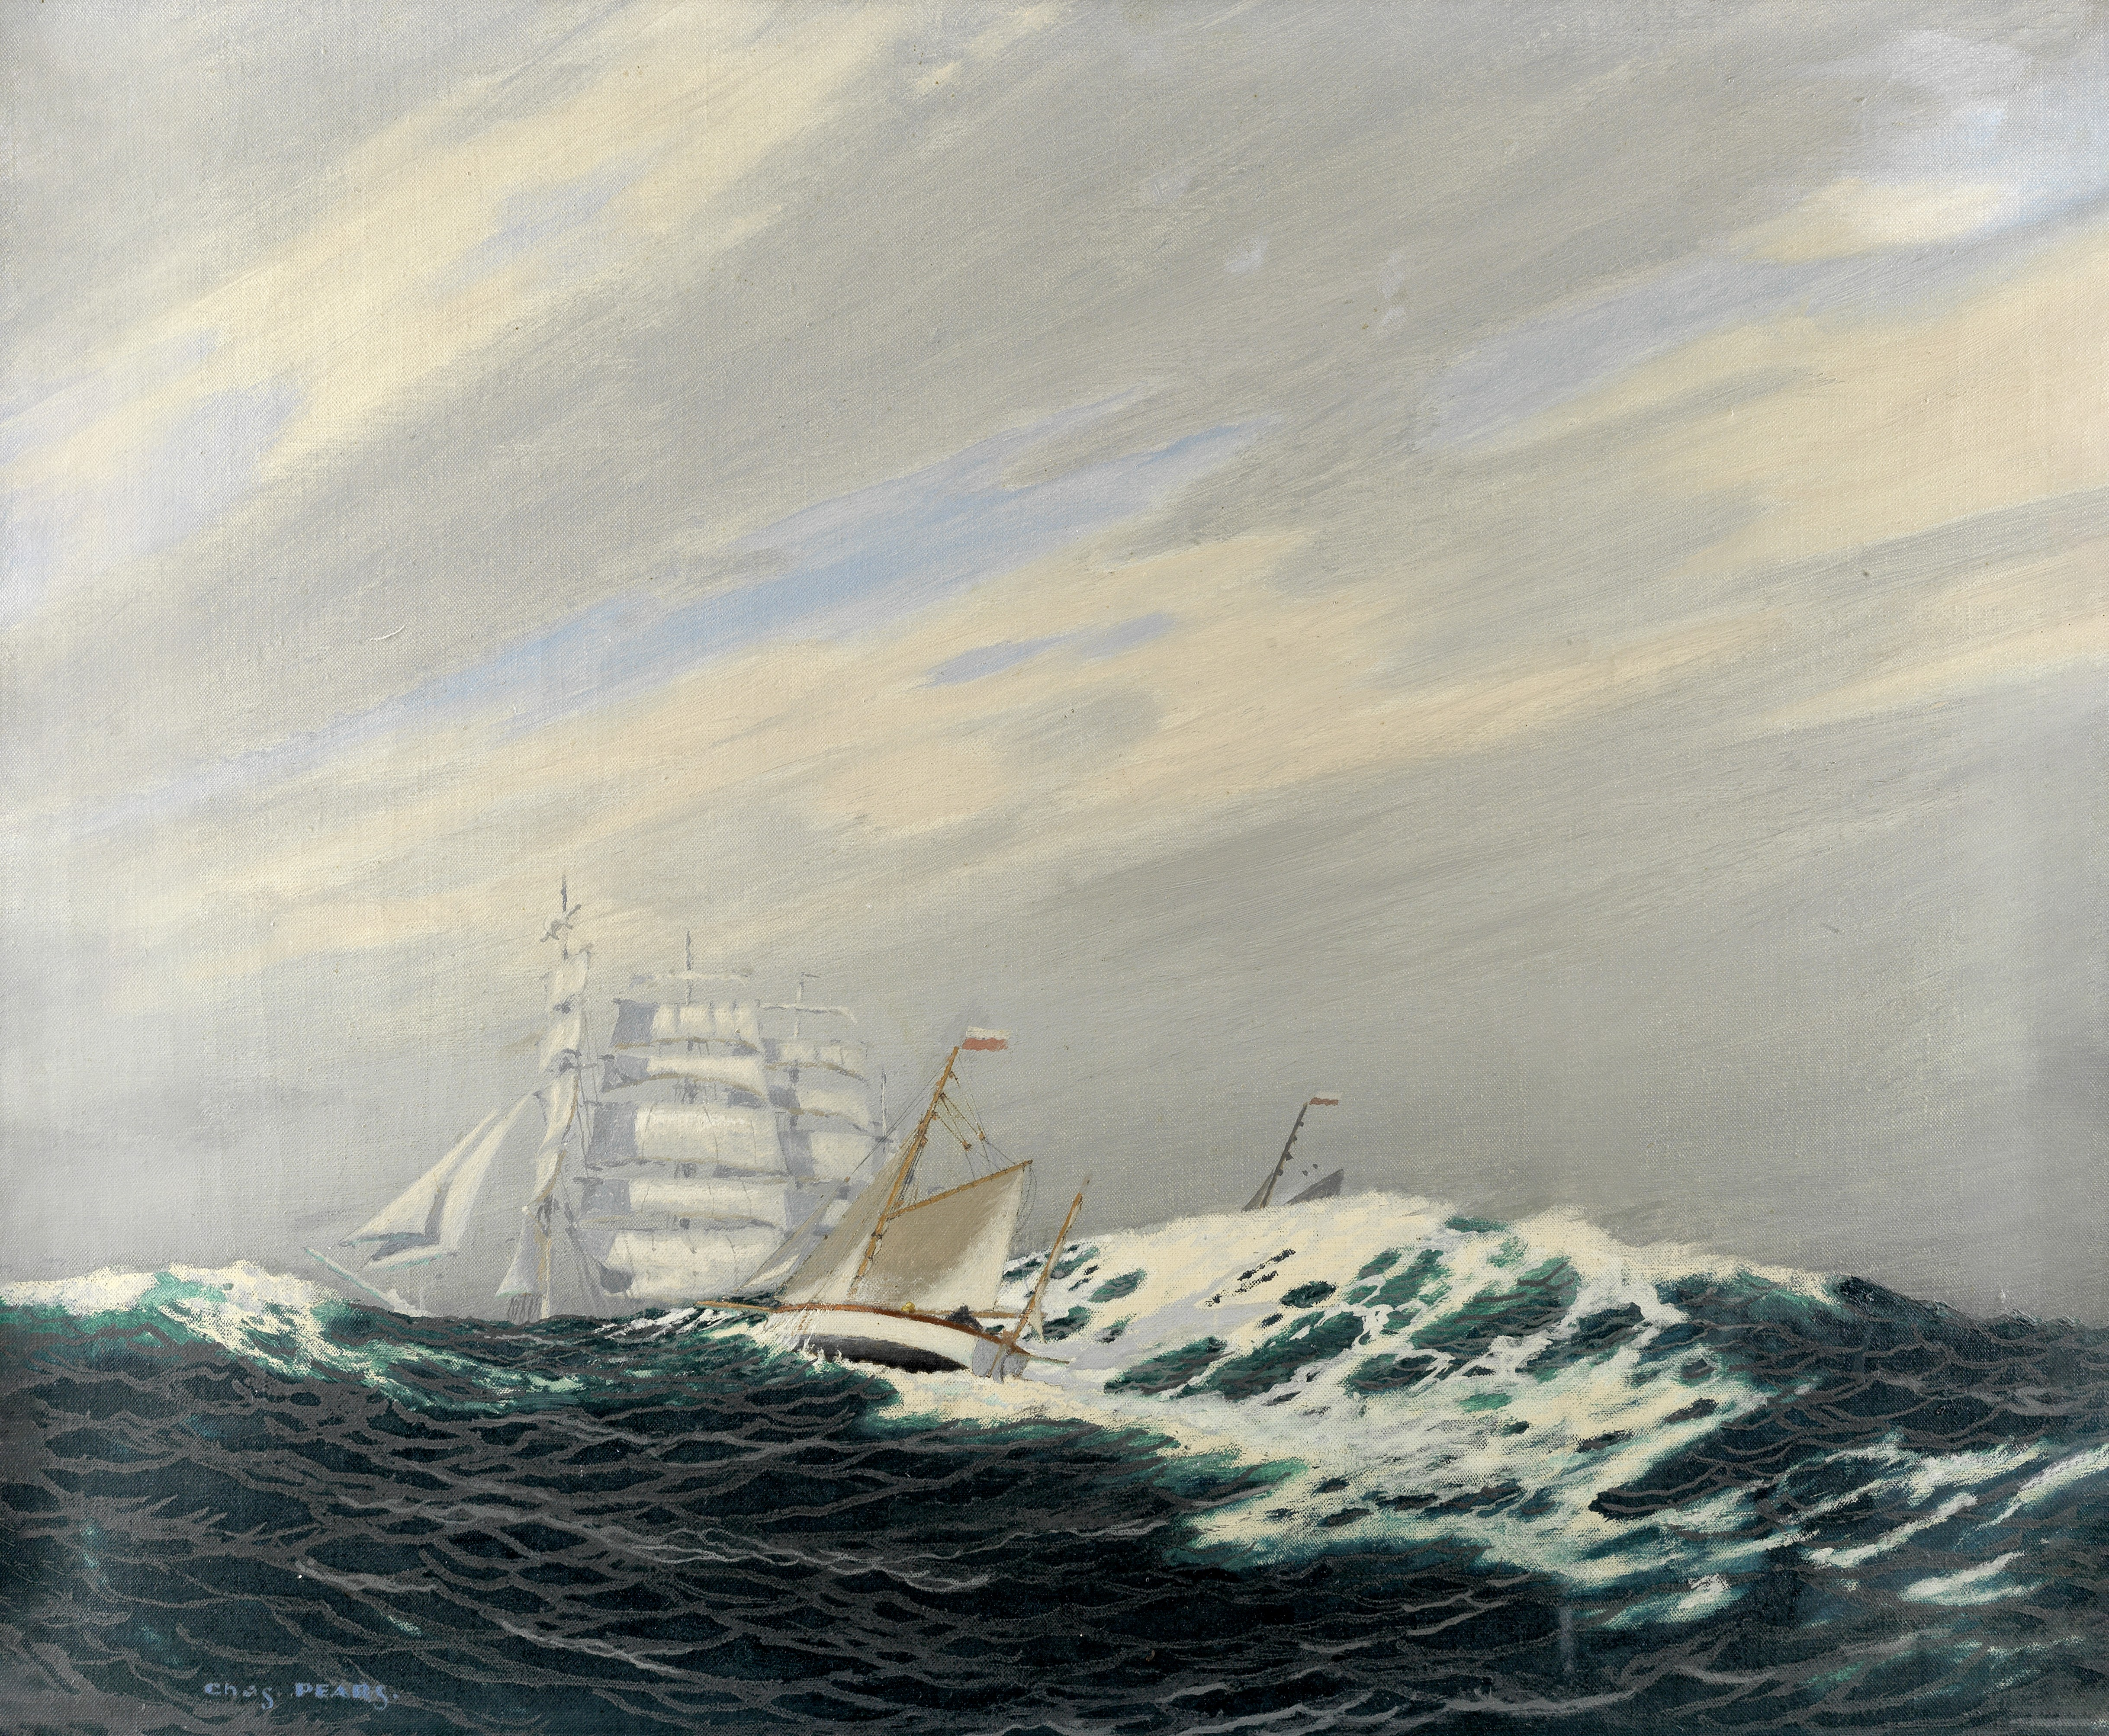 Charles Pears, RSMA (British, 1873-1958) A cutter in a heavy swell, a four-masted barque beyond